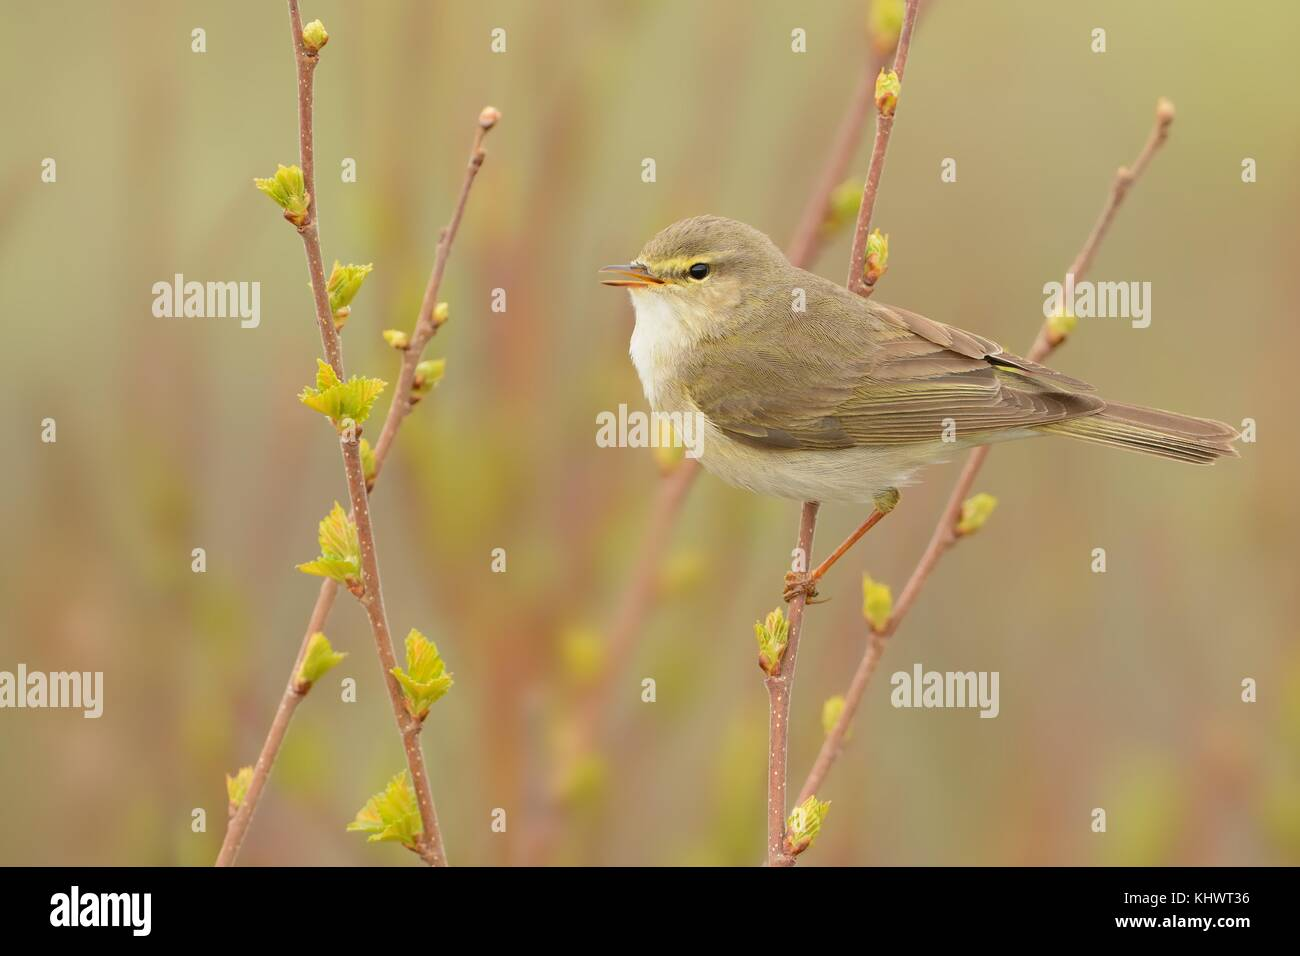 Willow Warbler (Phylloscopus trochilus) sitting on the willow. Little songbird in the scrub. Light spring. - Stock Image